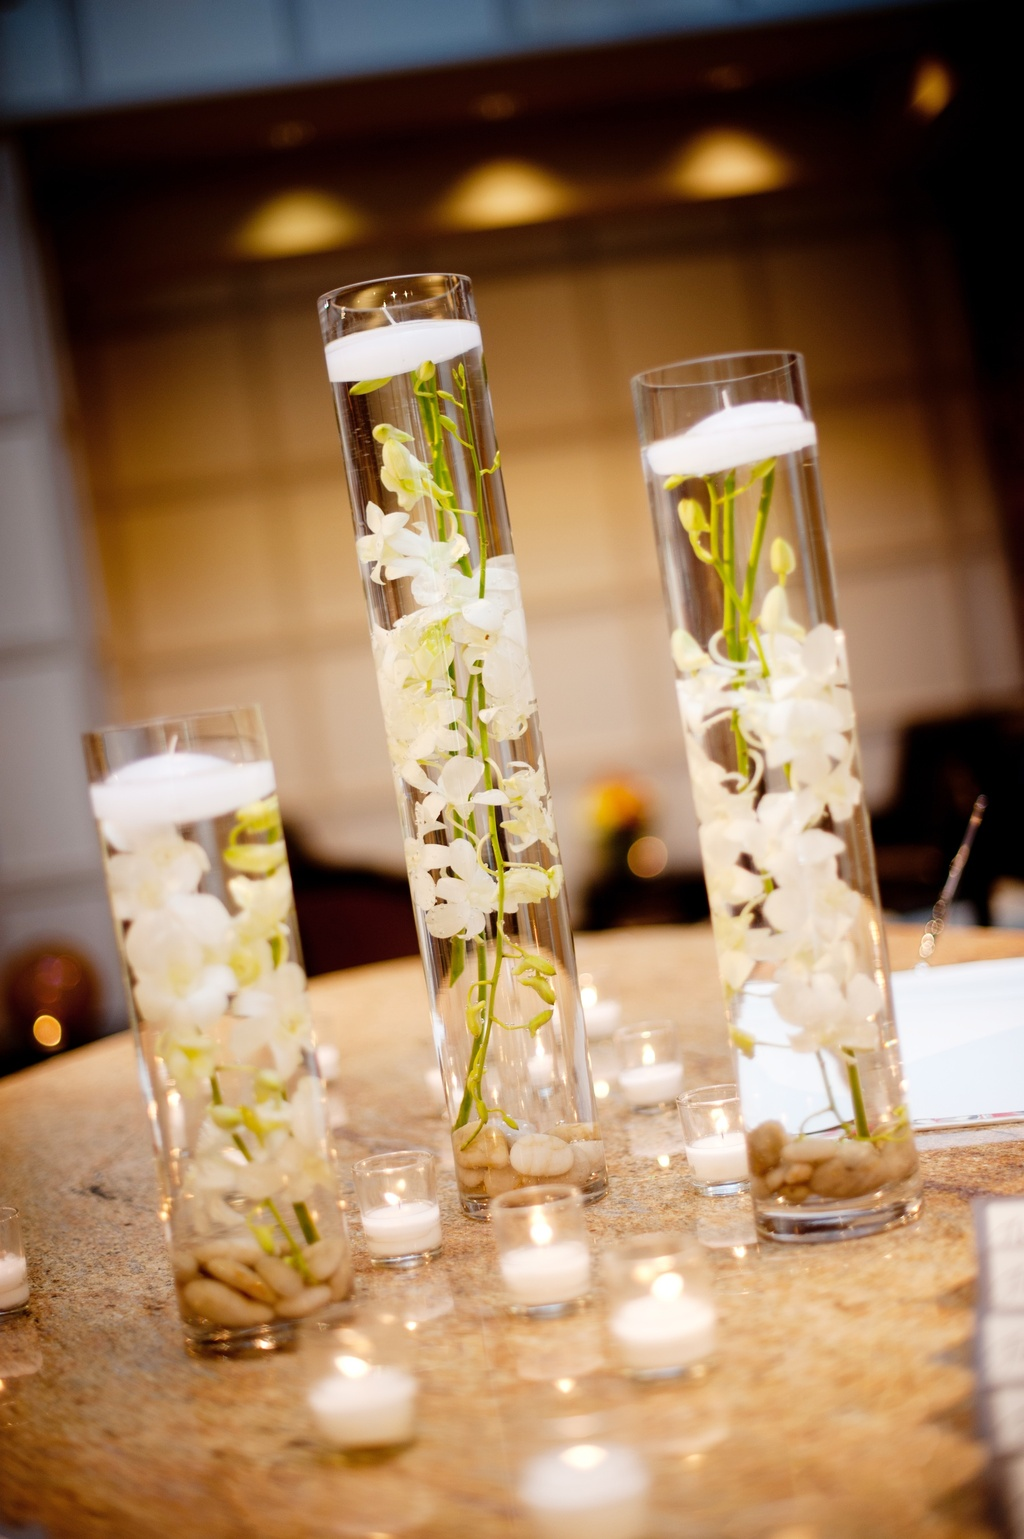 Elegant-real-wedding-with-simple-diy-details-hurricane-vases-floating-white-orchids-centerpieces.full